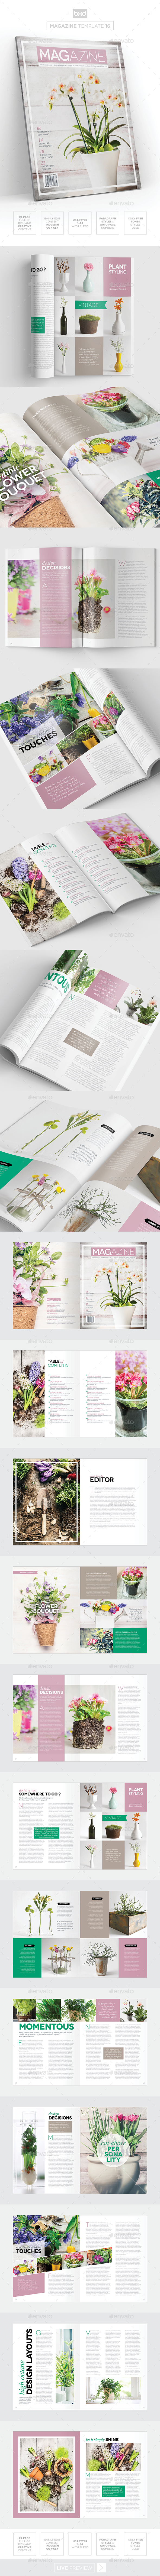 Magazine Template - InDesign 24 Page Layout V16 - Magazines Print Templates